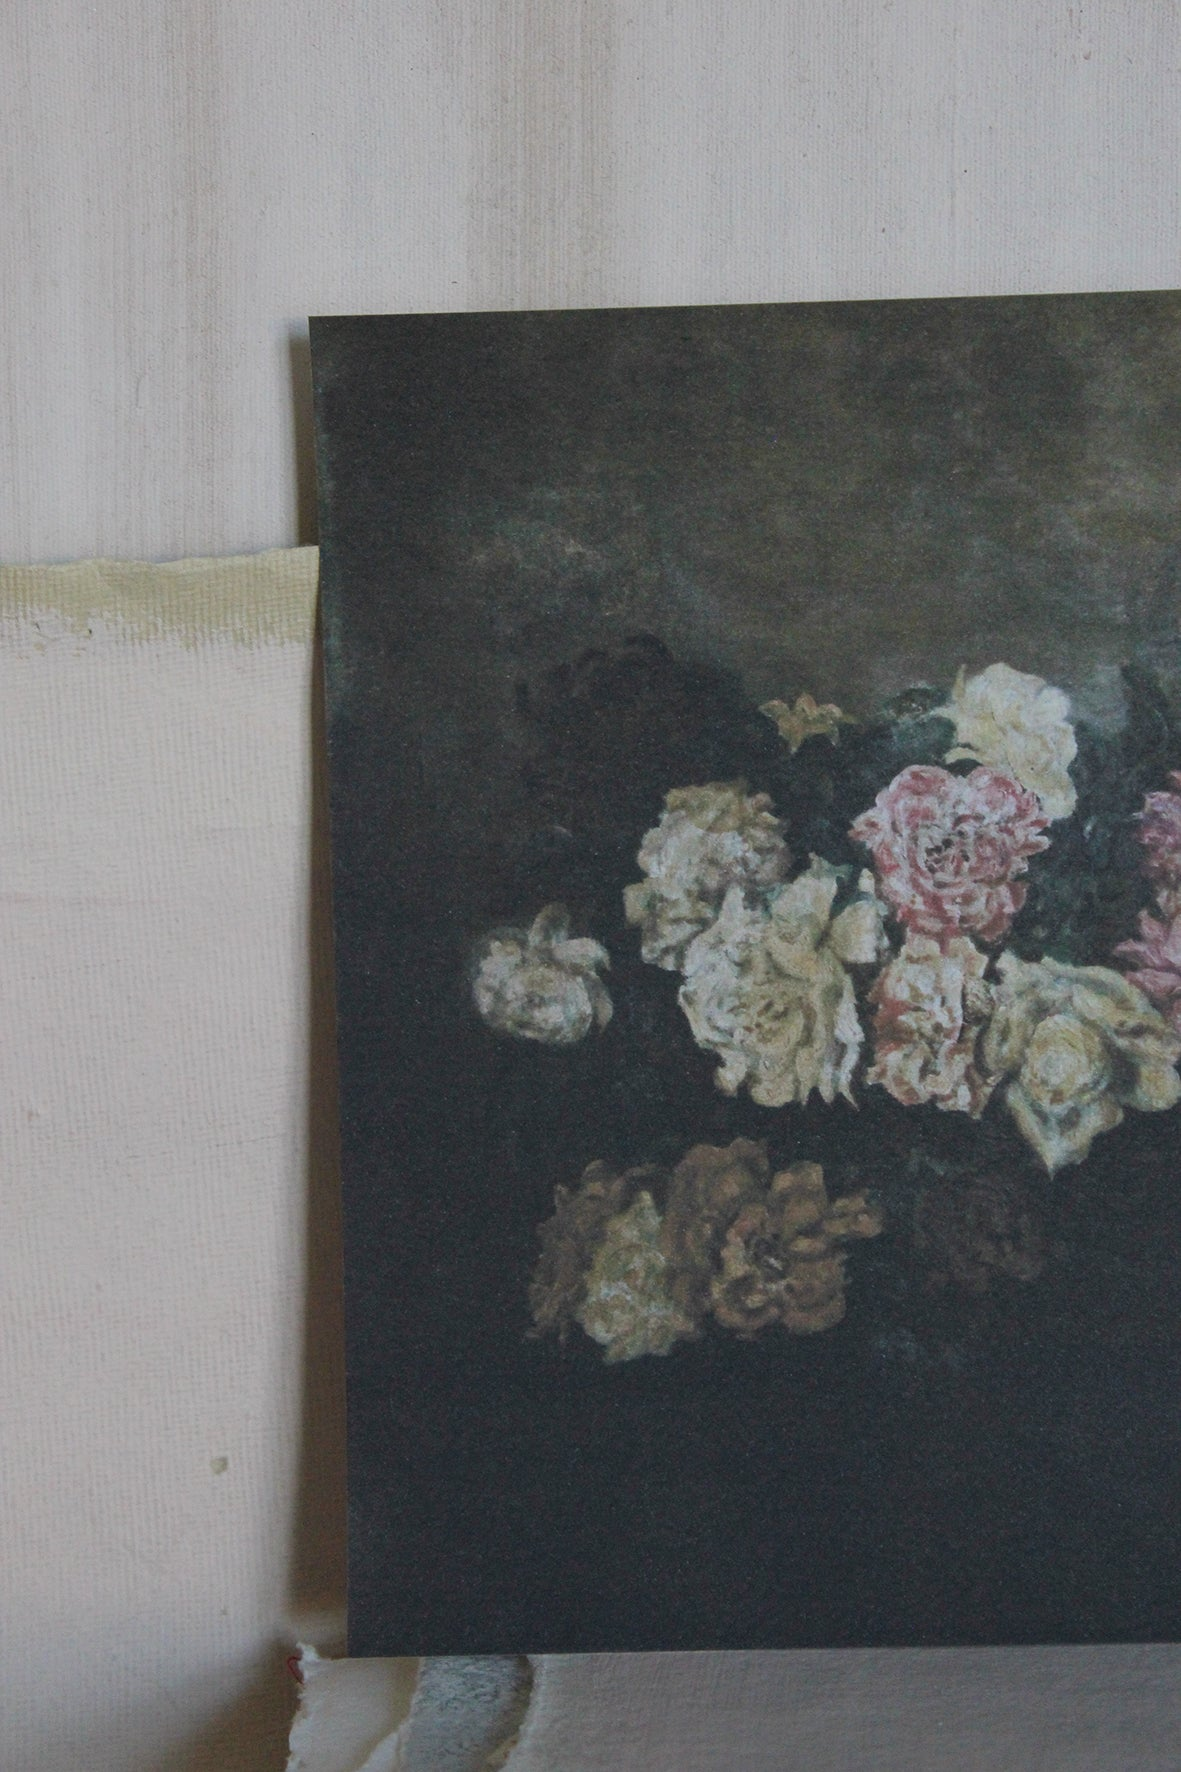 'STILL LIFE' CARD - THE OLD ROSE CANVAS